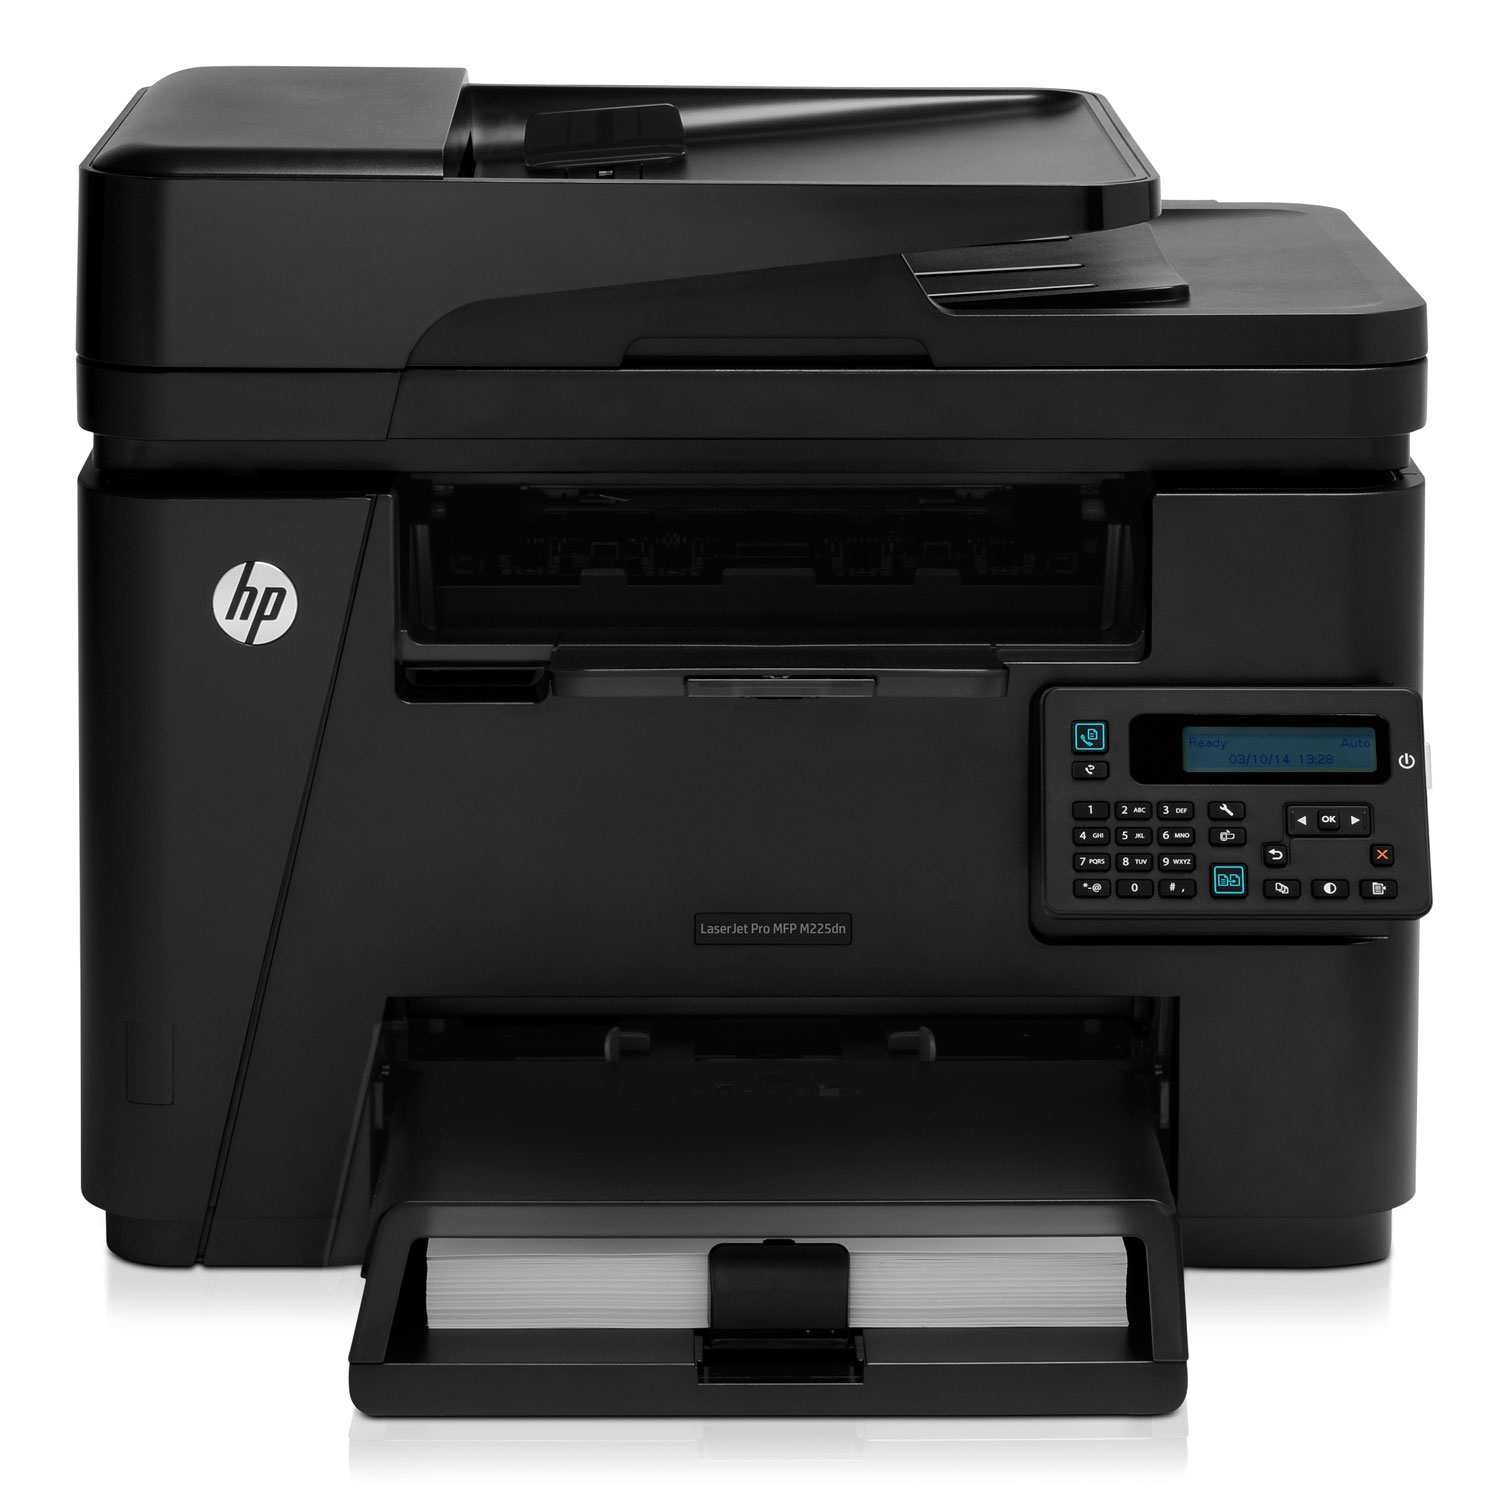 hp laserjet pro mfp m225dn imprimante multifonction hp sur ldlc. Black Bedroom Furniture Sets. Home Design Ideas